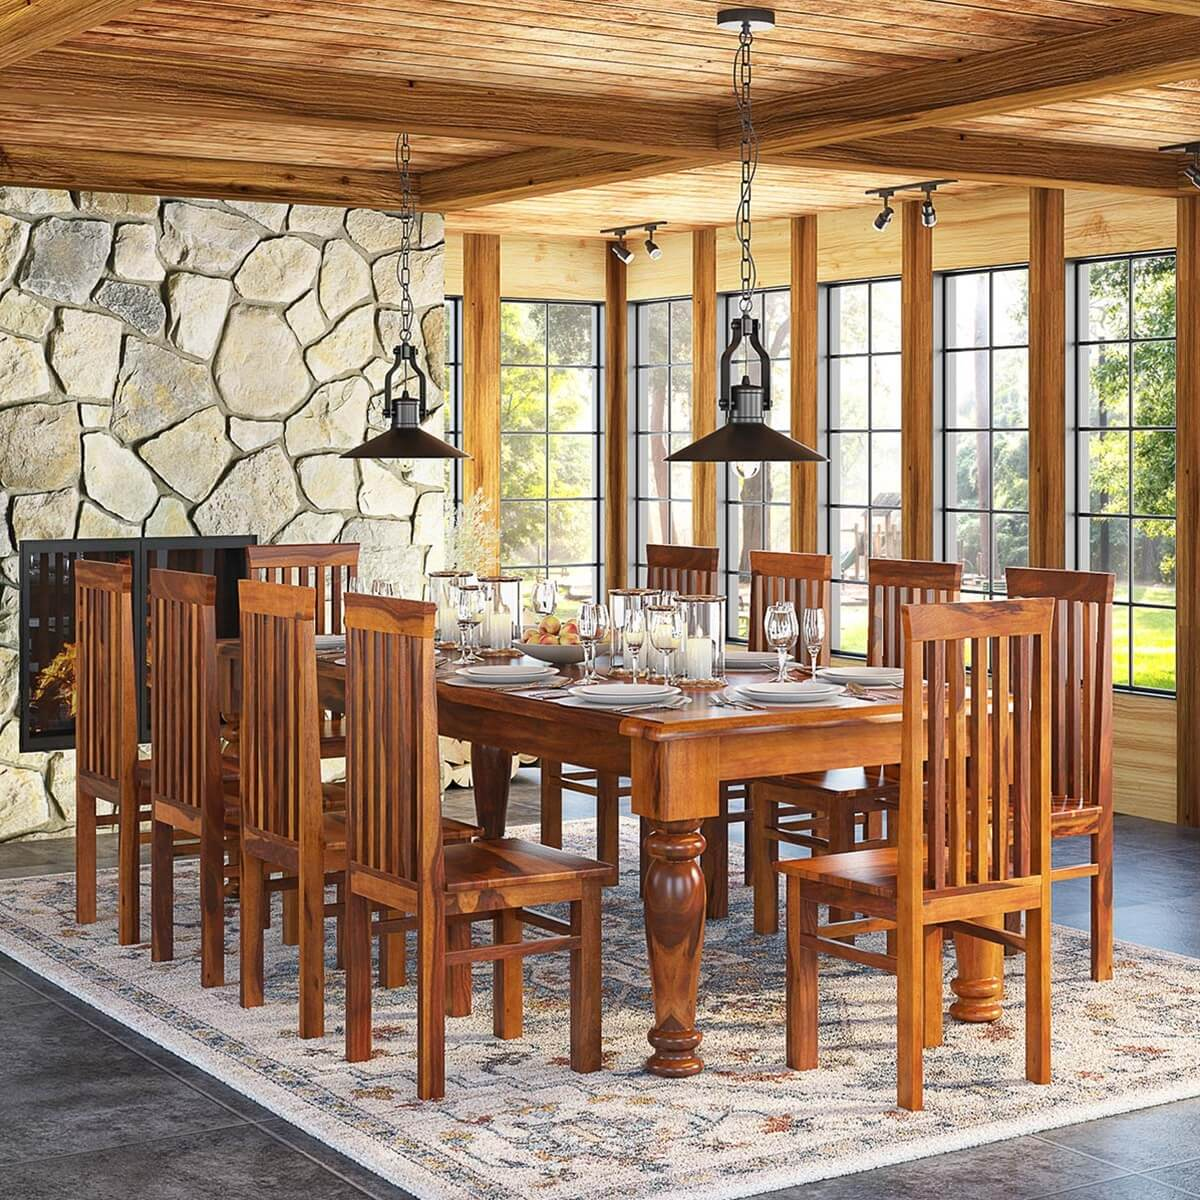 Large Solid Wood Rectangular Rustic Dining Table Chair Set Furniture